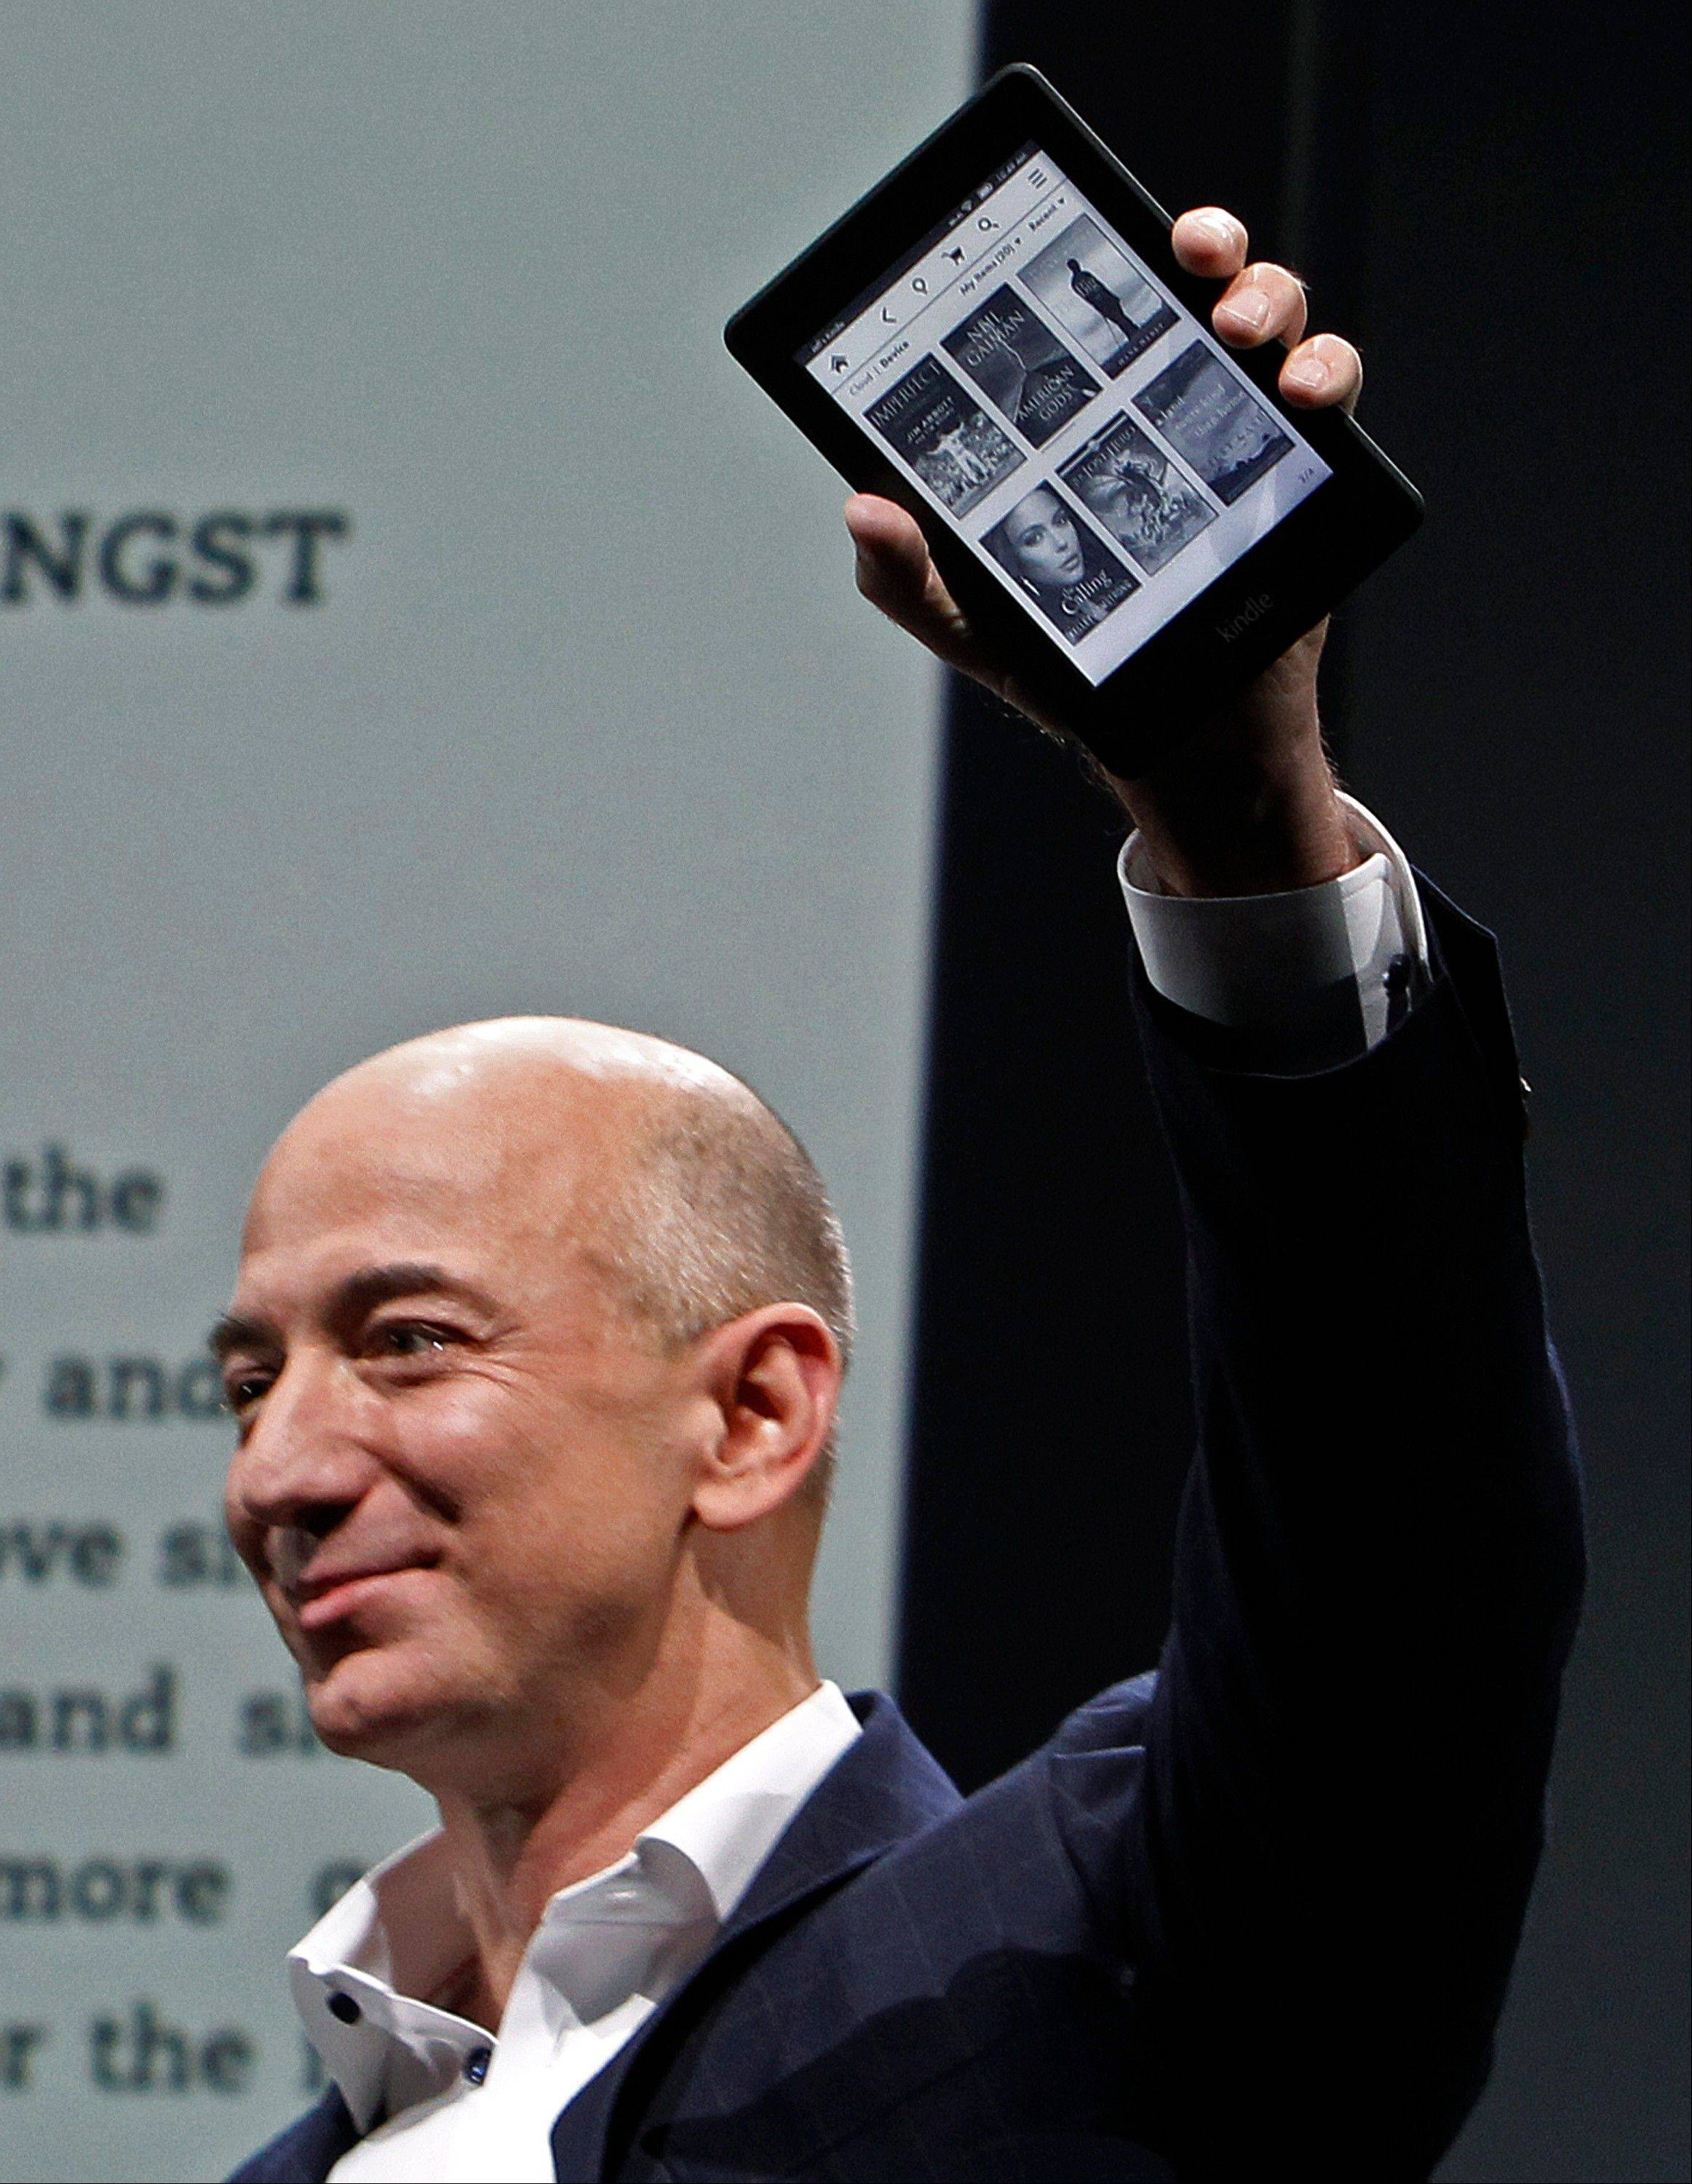 Jeff Bezos, CEO and founder of Amazon, holds the Kindle Paperwhite at the introduction of the new Amazon Kindle Fire HD and Paperwhite devices in Santa Monica, Calif., Thursday.